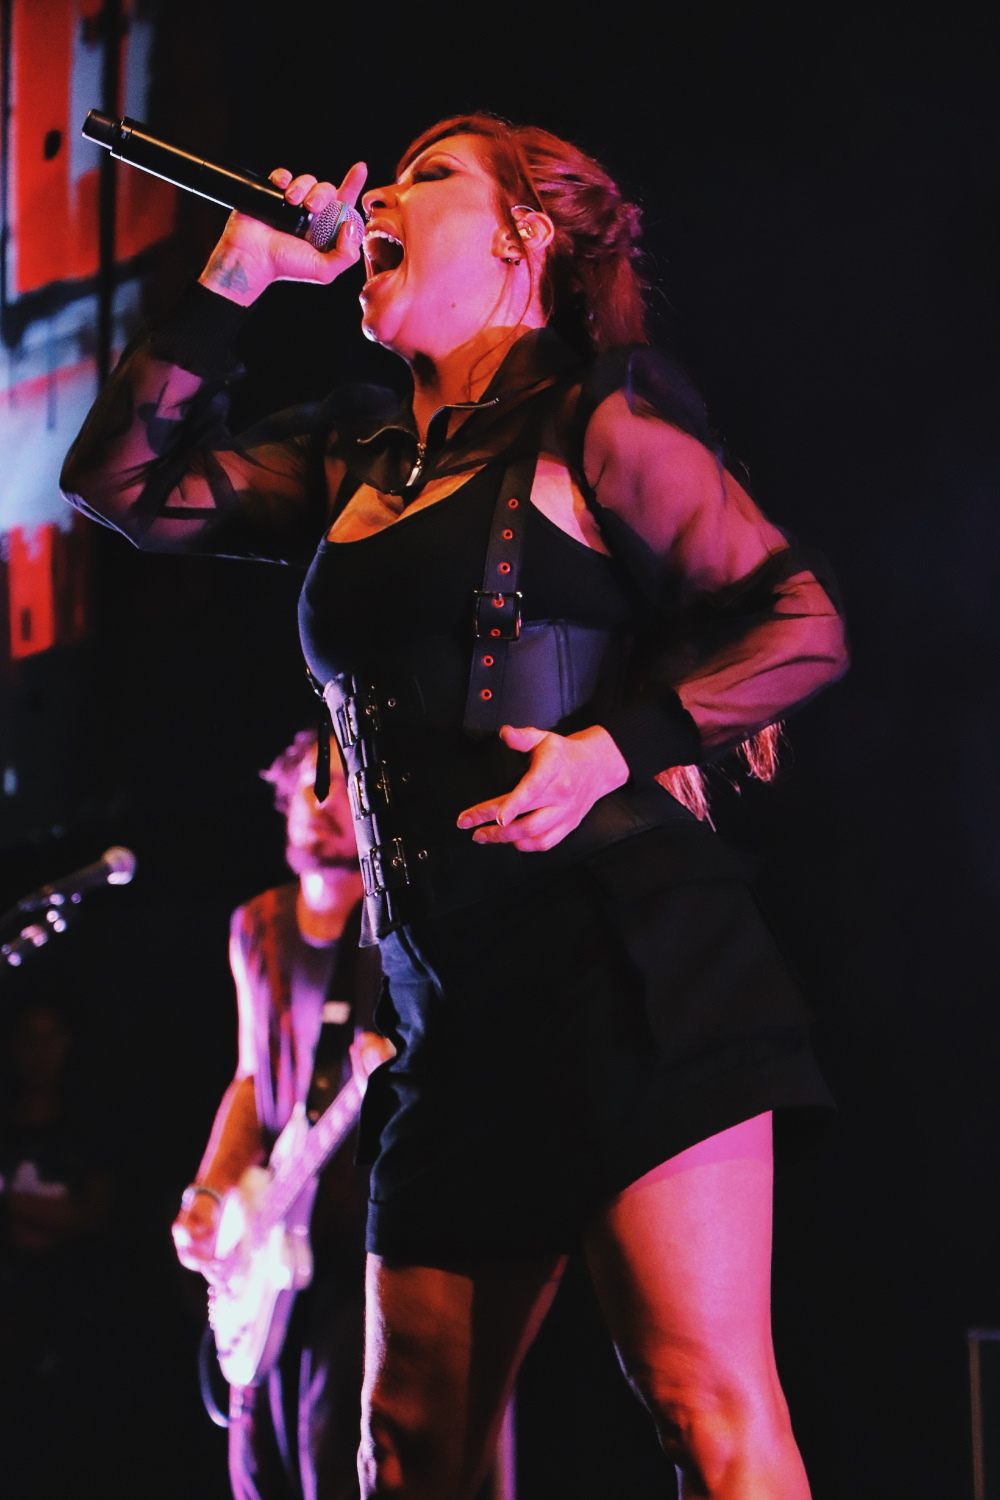 Pitty grava DVD em Salvador